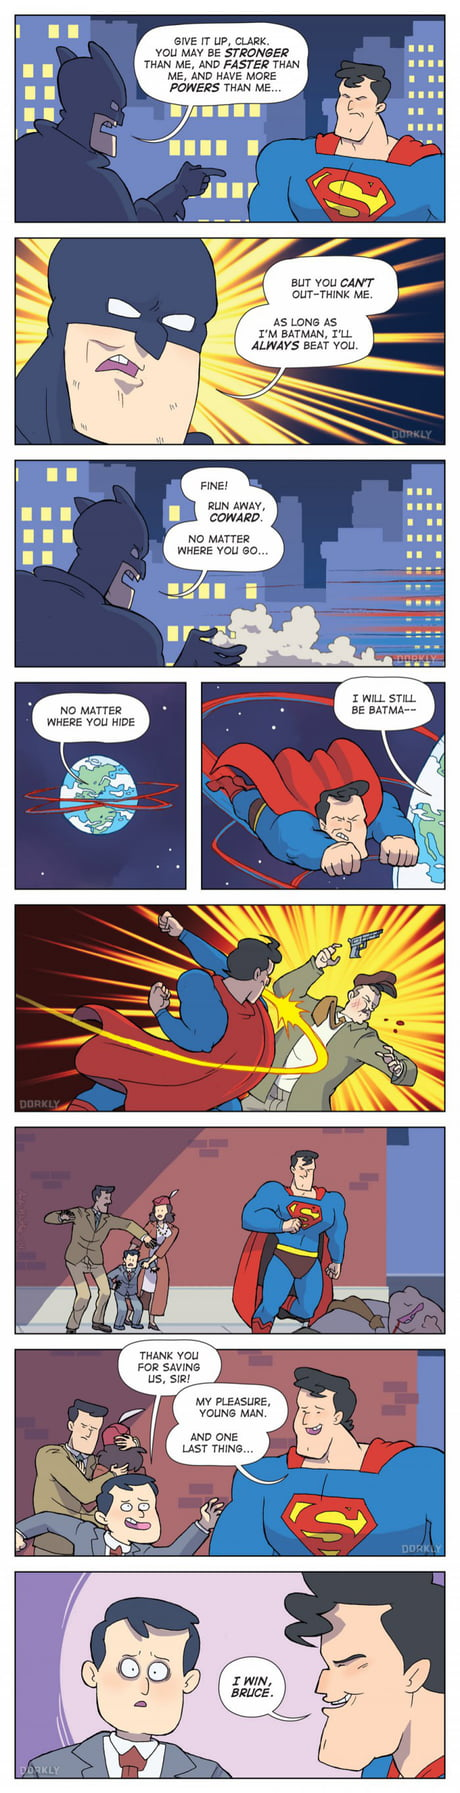 Superman Wins!